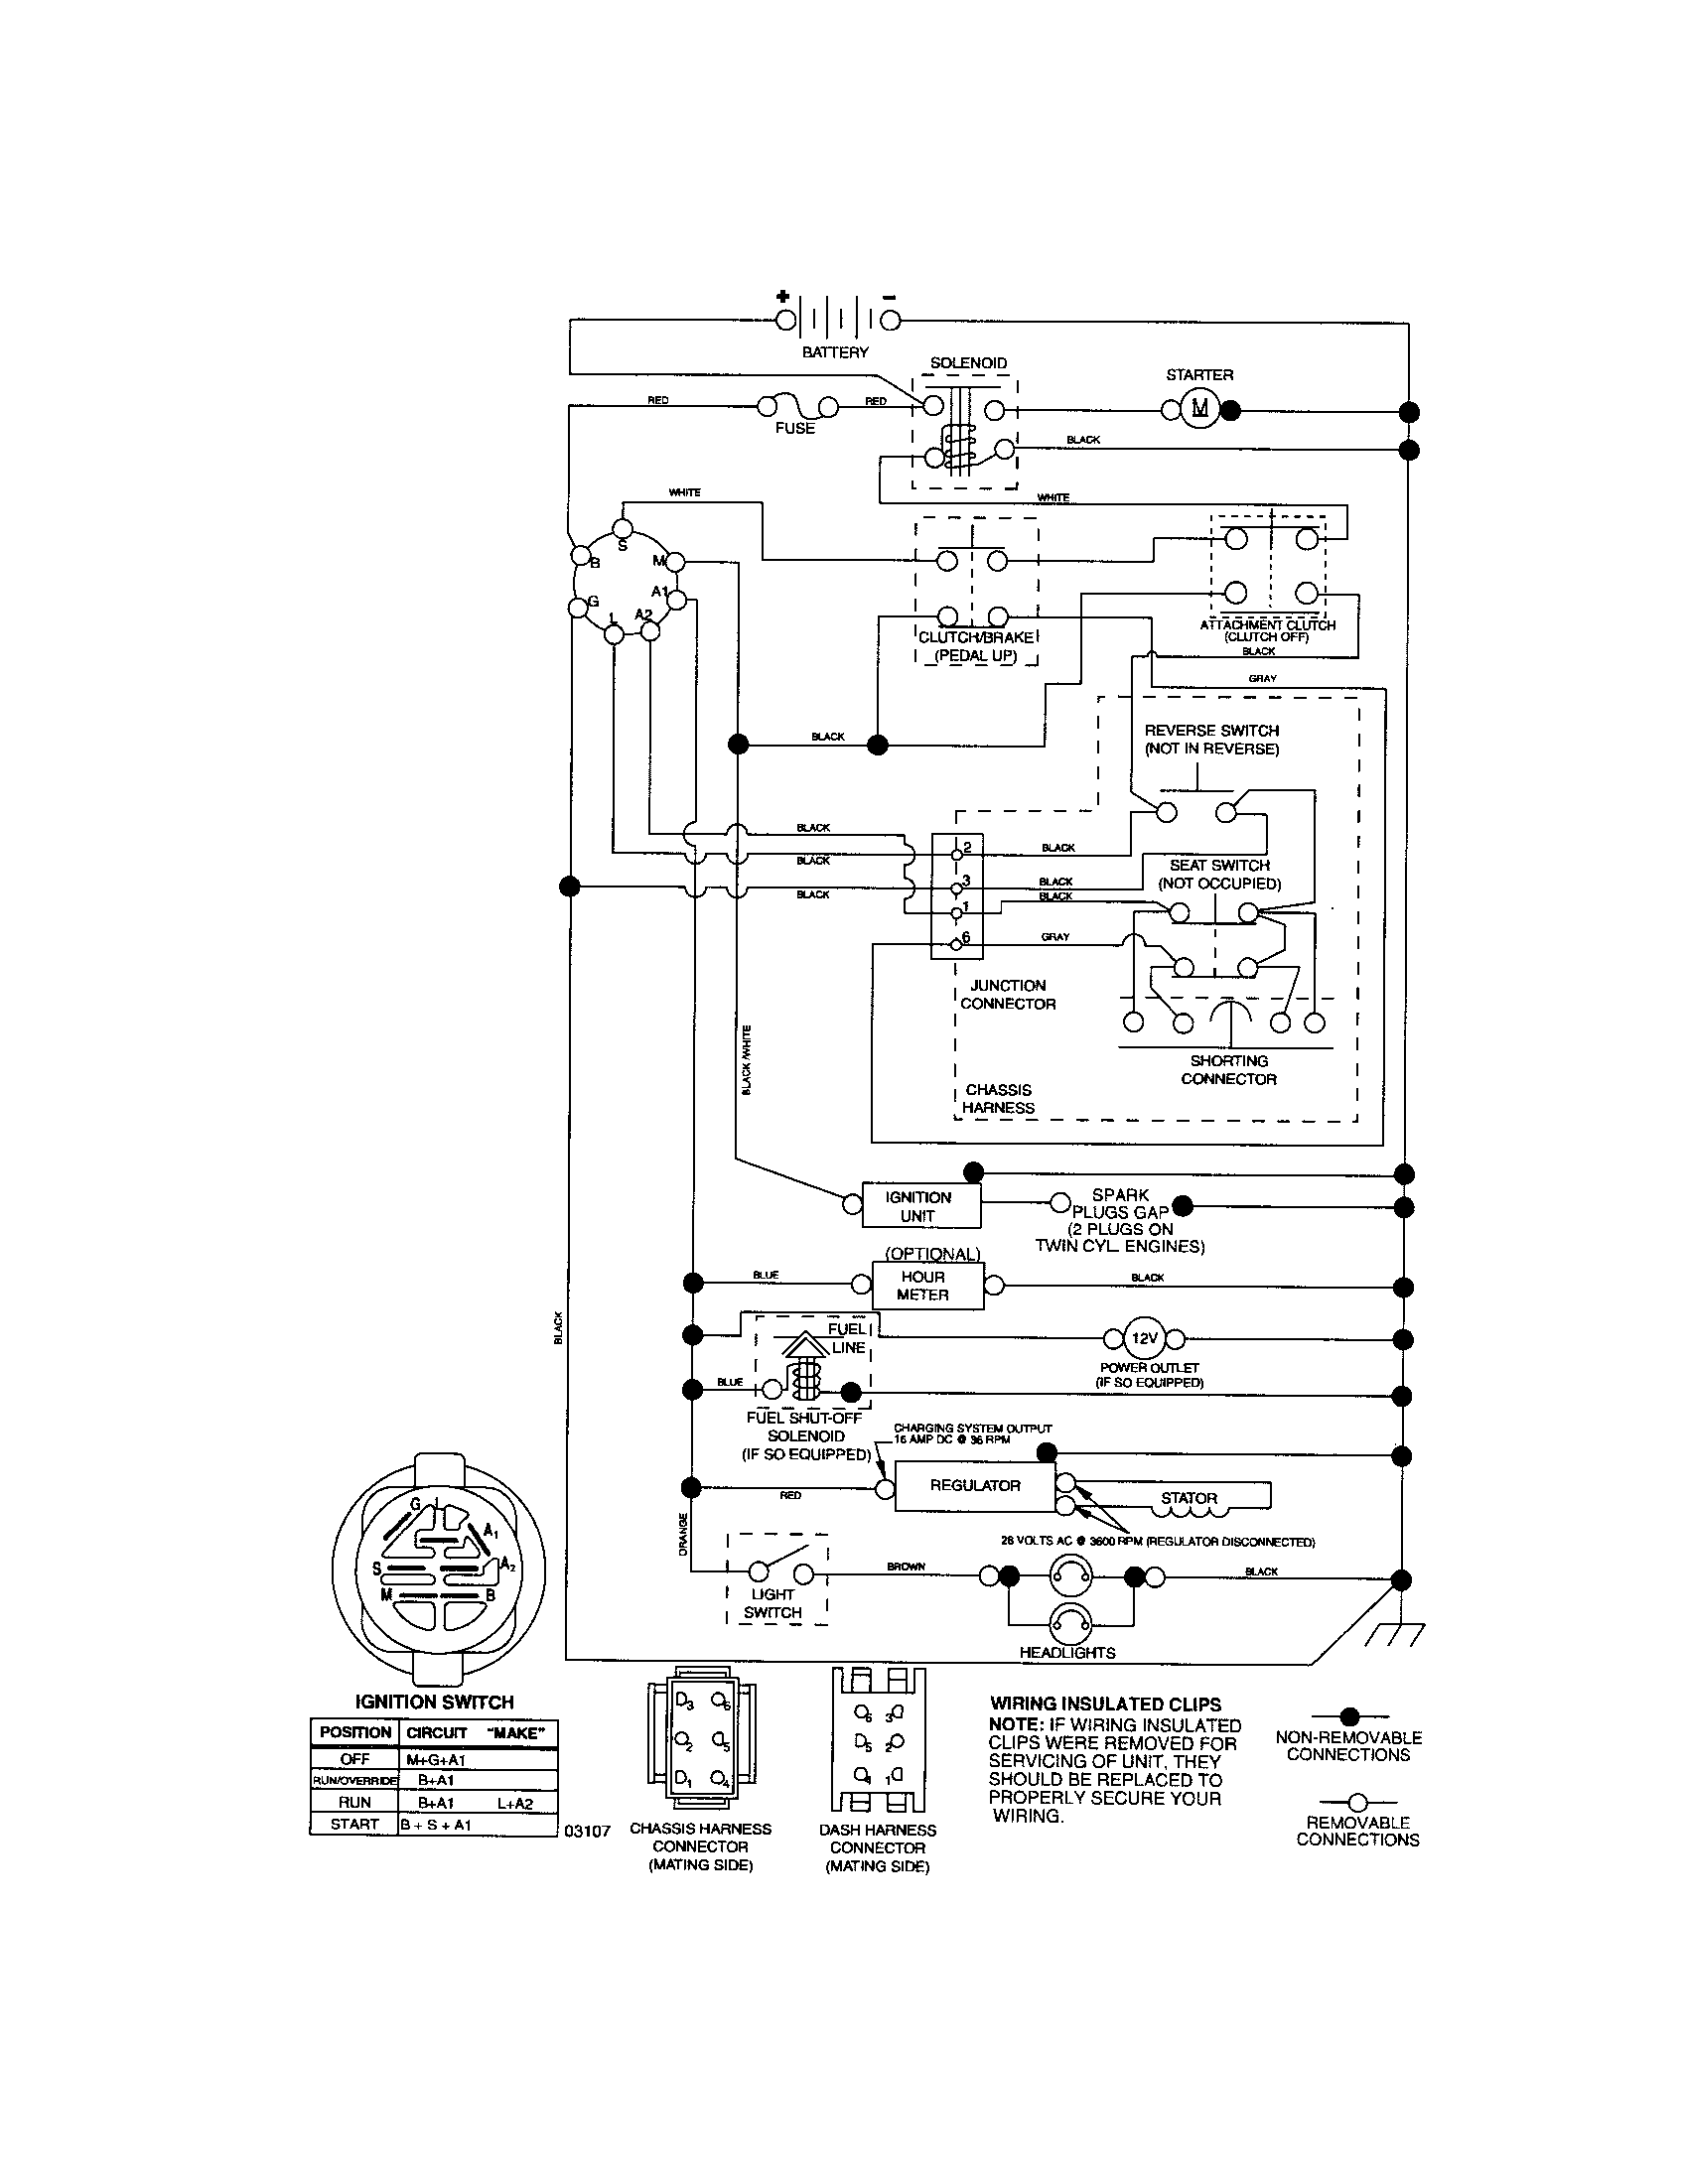 Kohler Cub Cadet Tractor Wiring Diagram Schematics Diagrams 1440 Craftsman Rh Sylviaexpress Com Belt